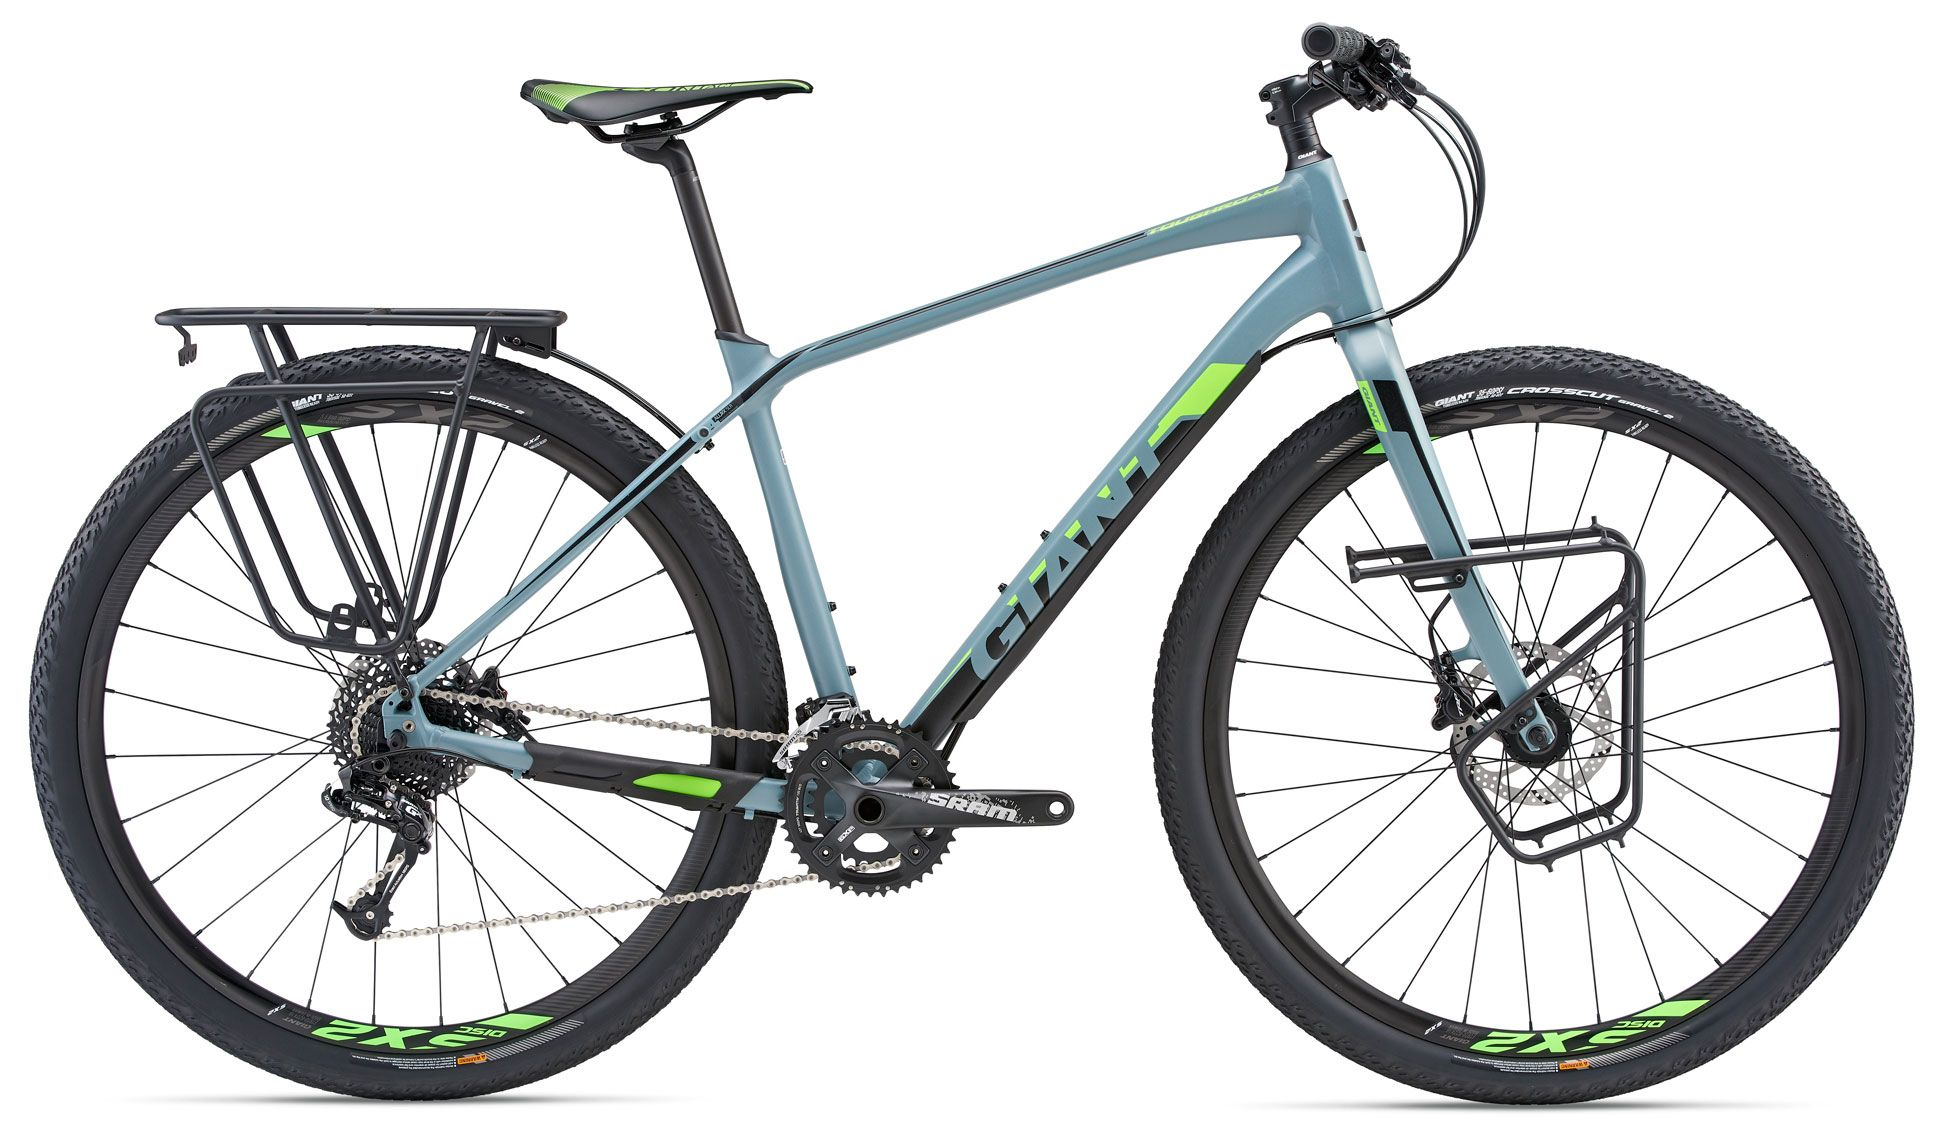 Велосипед Giant ToughRoad SLR 1 2018 велосипед giant xtc composite 1 2013